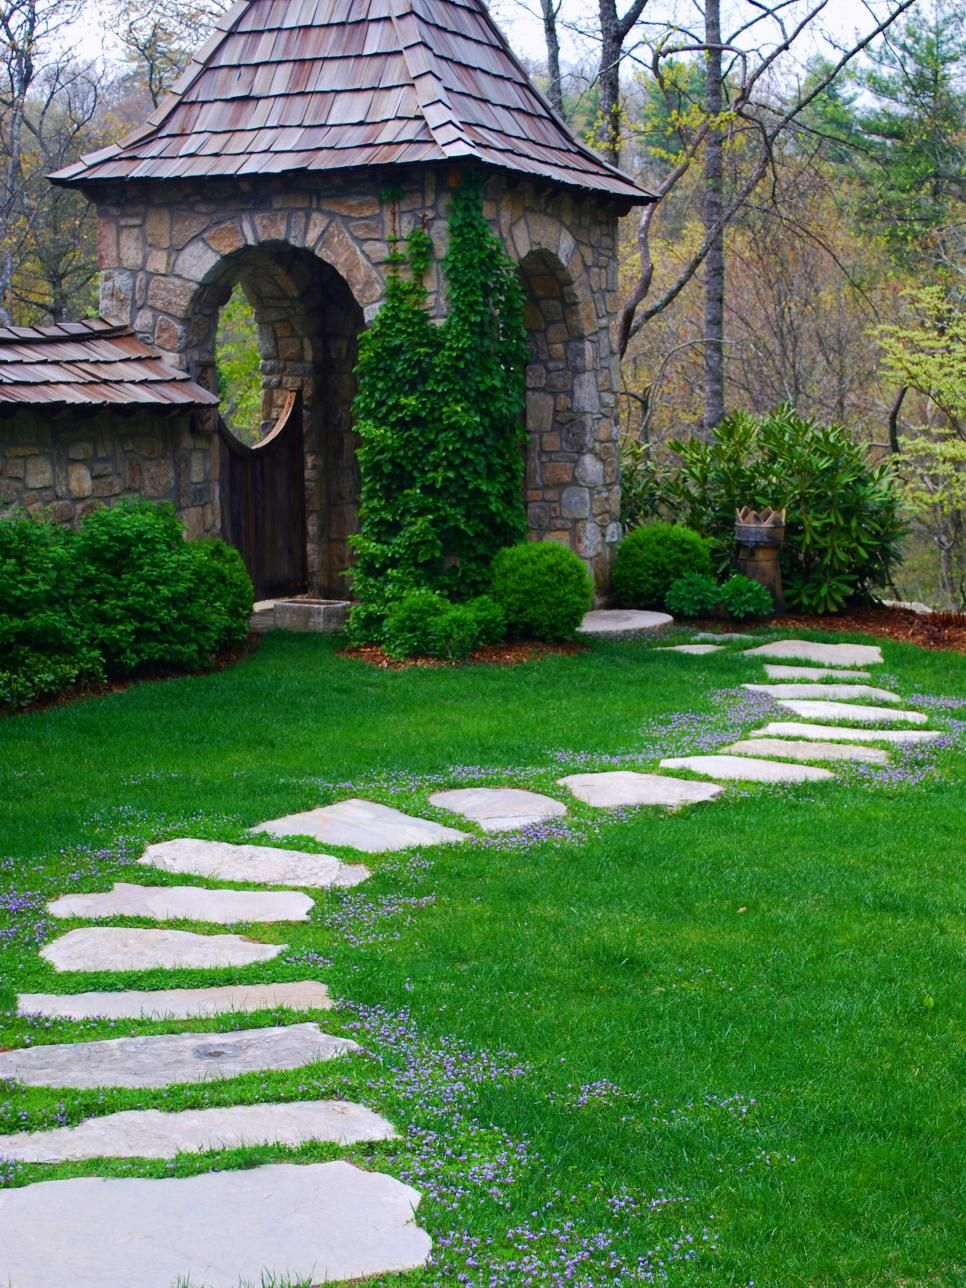 Pictures of garden pathways and walkways | Walkways paths, Garden paths, Garden  pathway